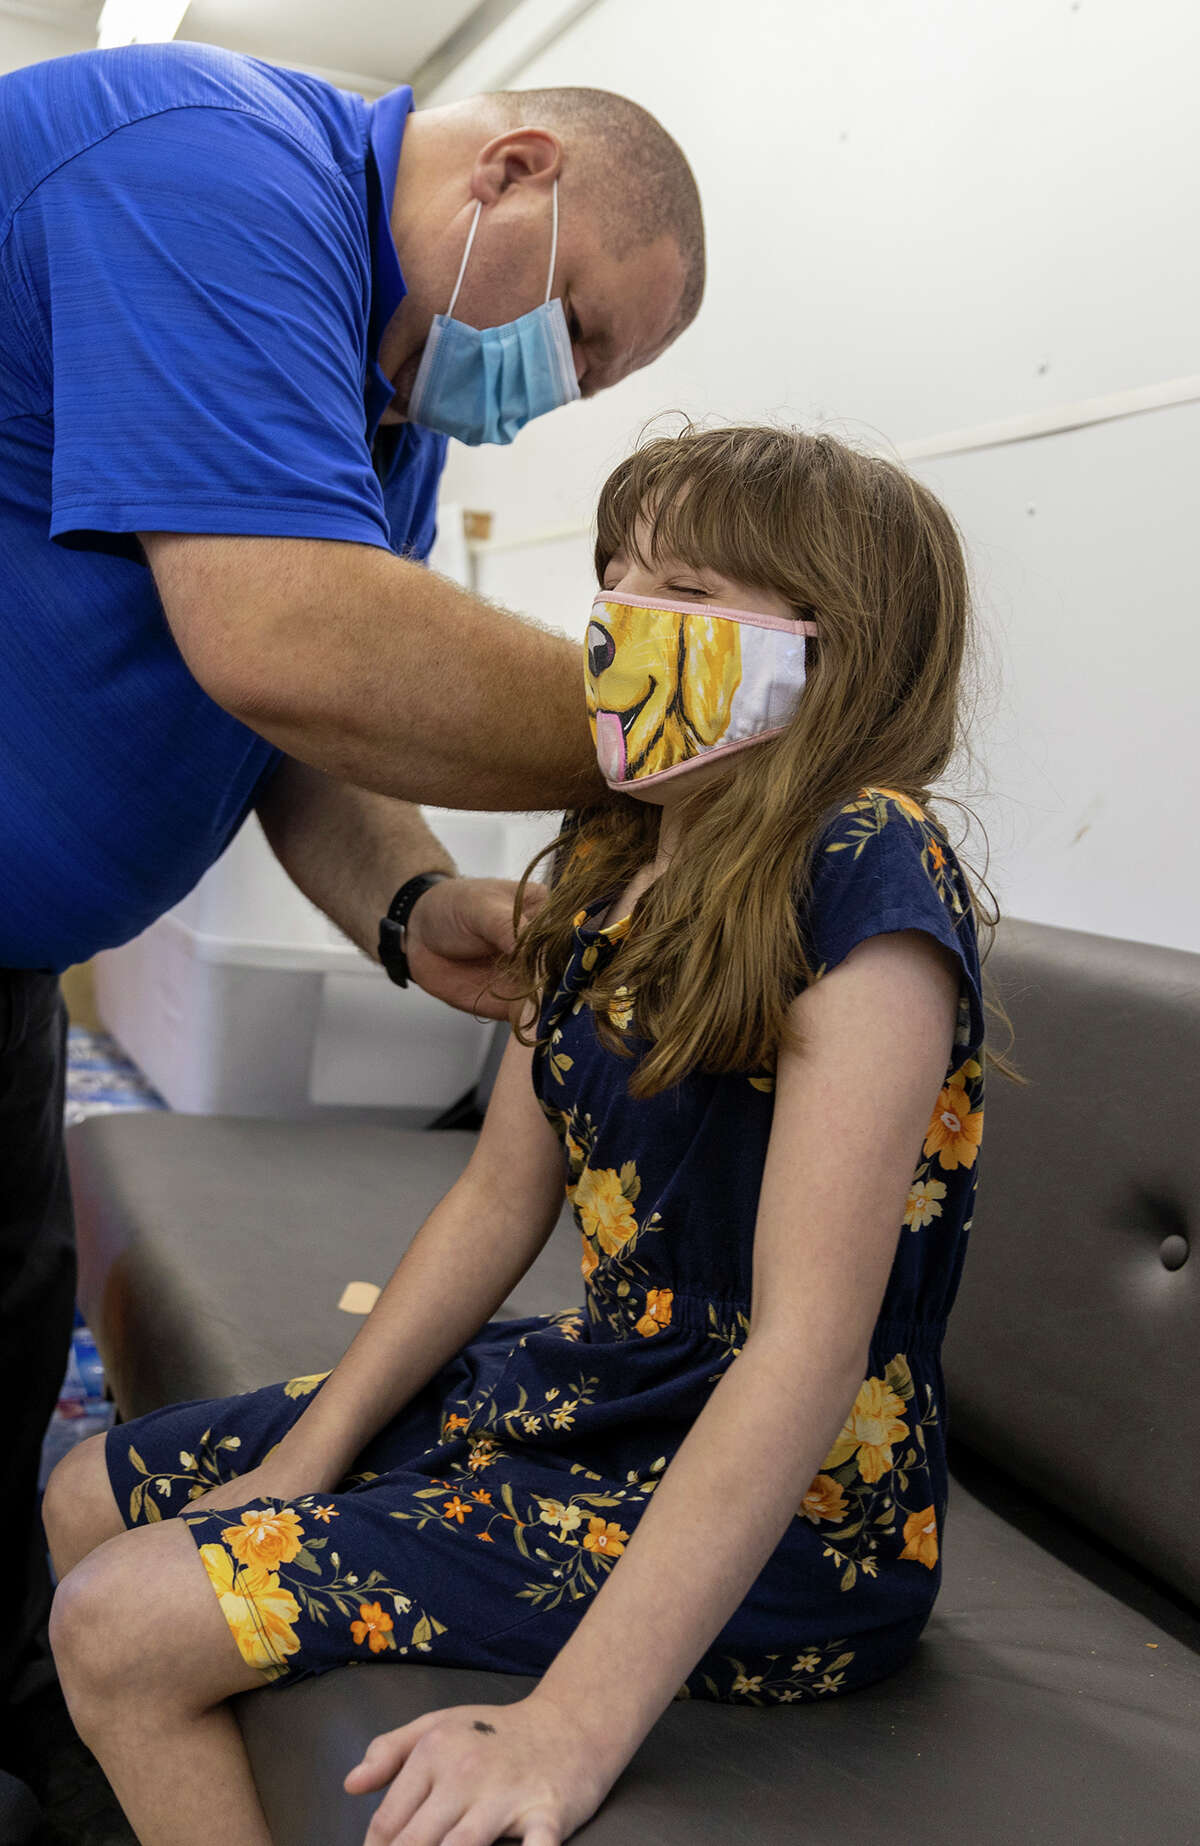 Kerri Denton, 13, gets a vaccine shot from Essex County nurse Jim Thomsen on Monday, June 7, 2021. If more children are vaccinated, it will keep more students in-person in school this year, officials say. Photo by Mike Lynch